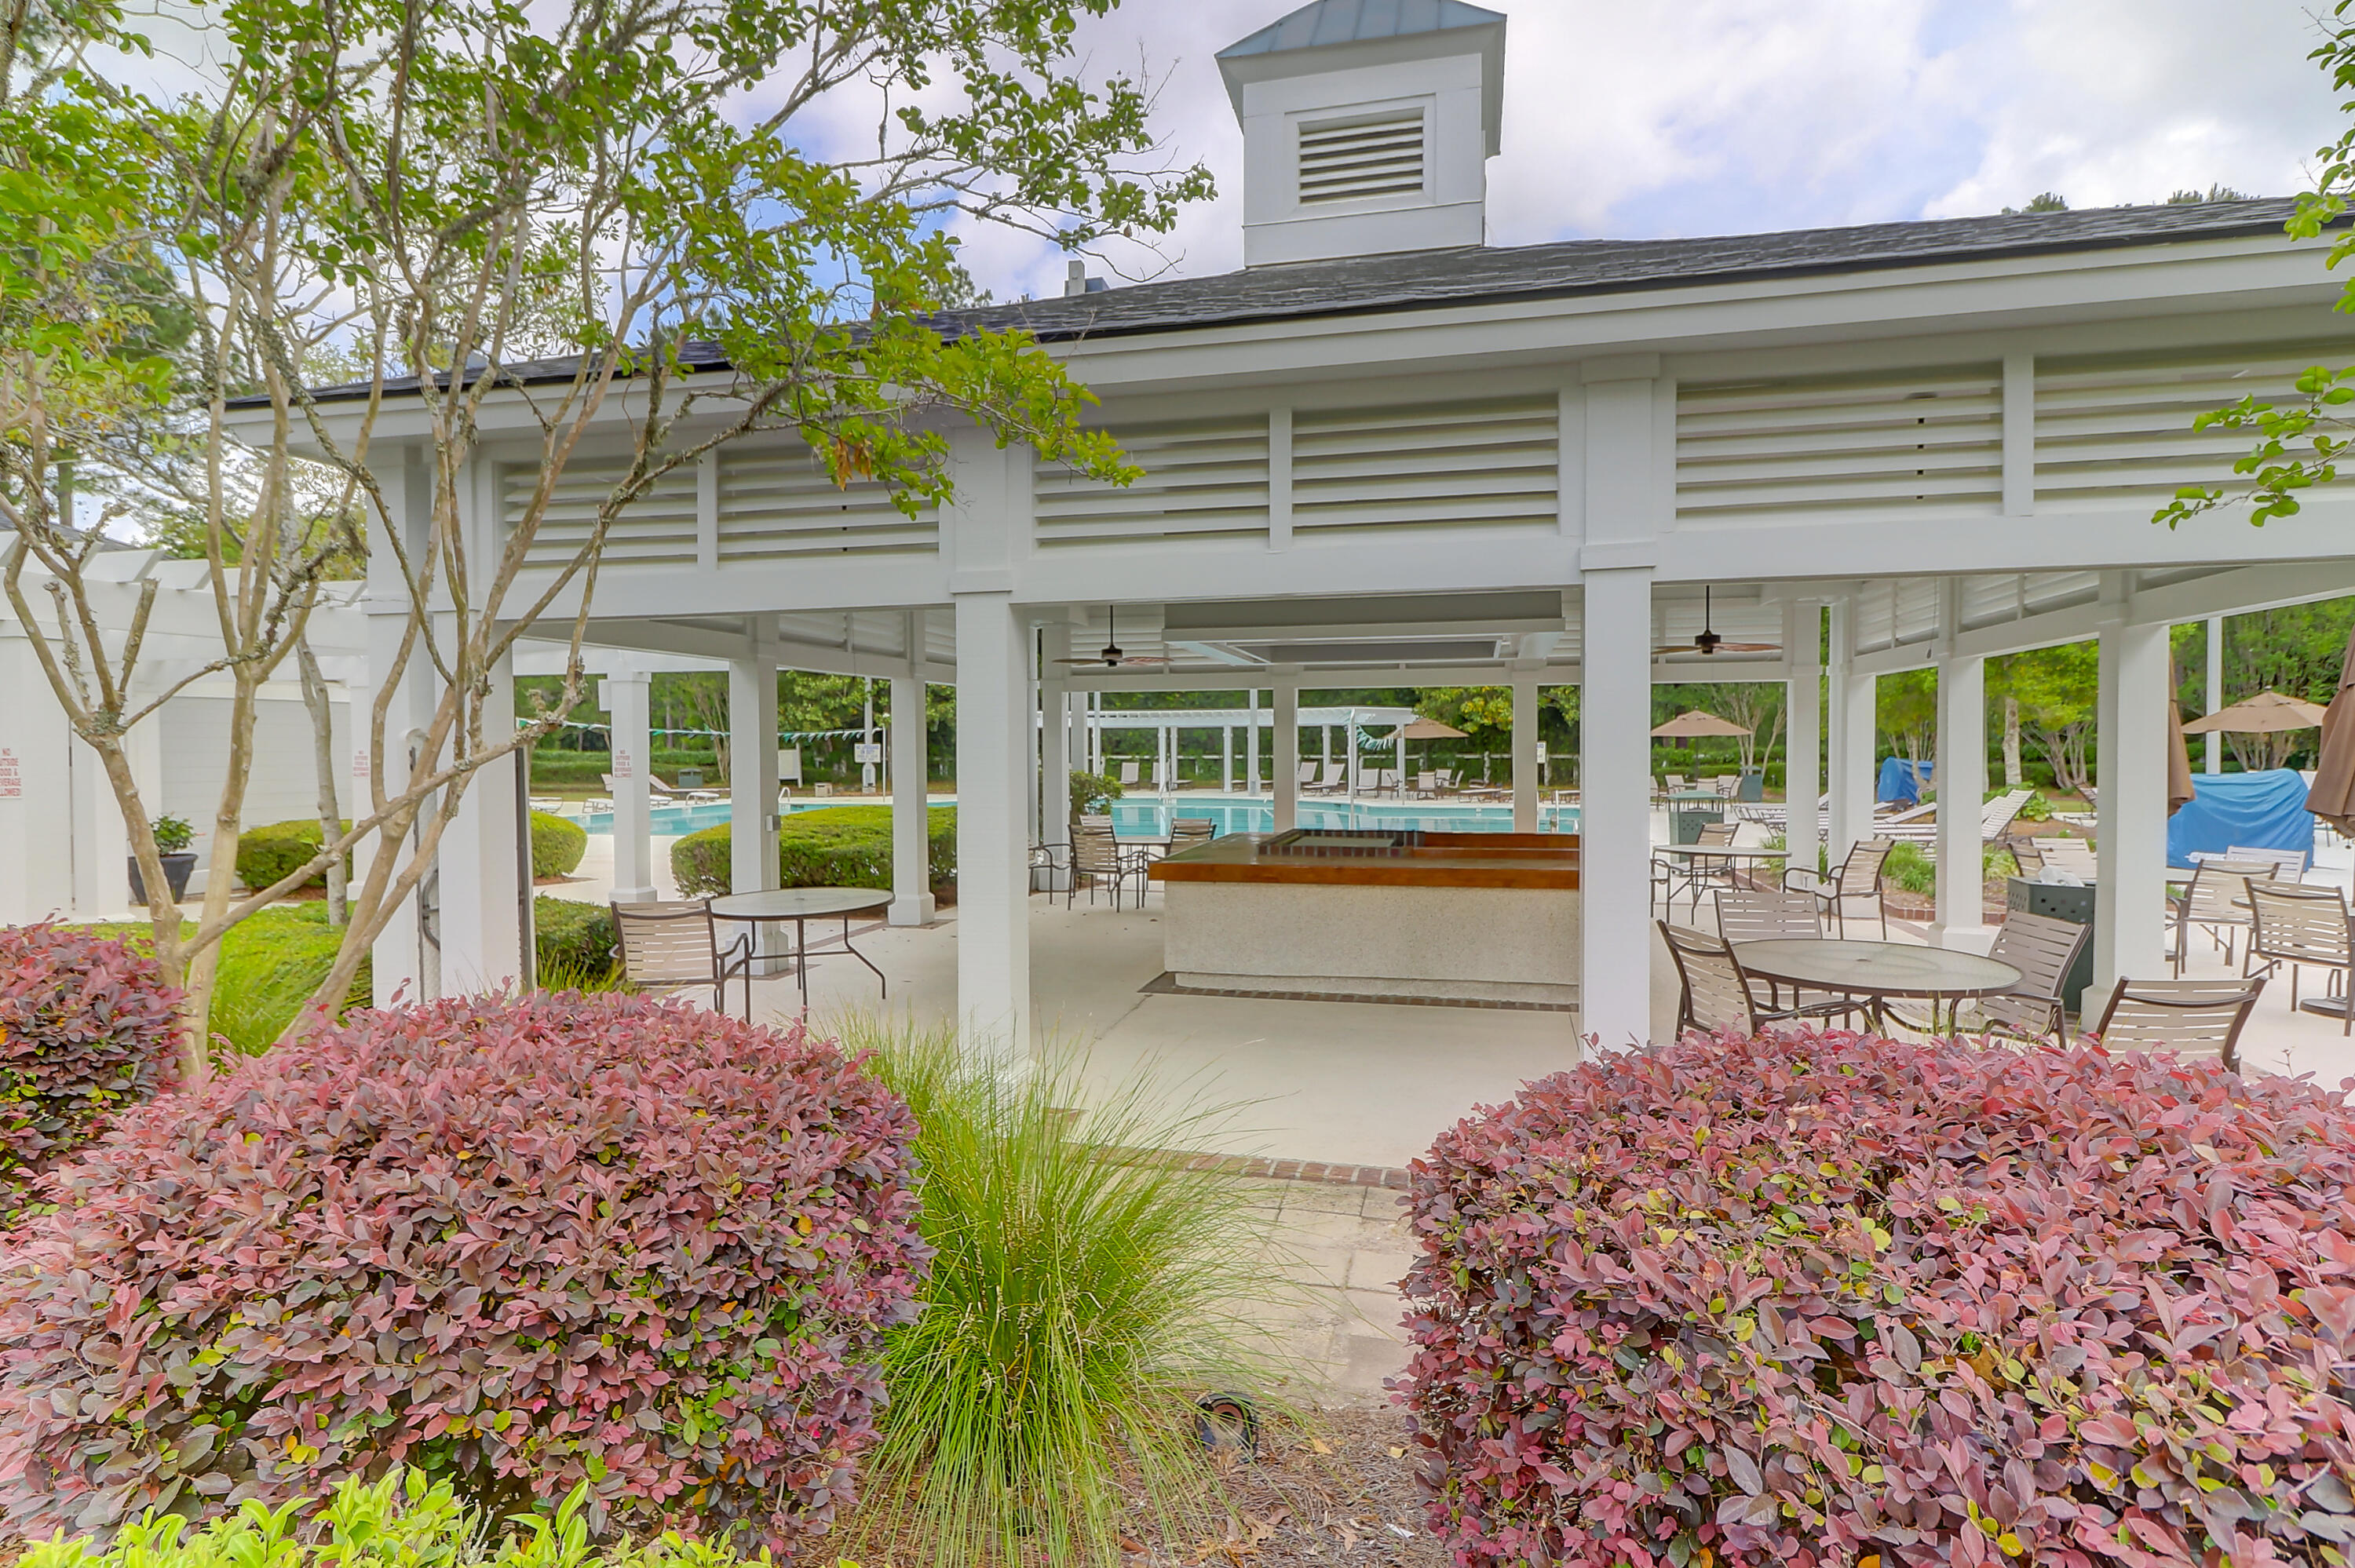 Coosaw Creek Country Club Homes For Sale - 8696 Fairway Woods, North Charleston, SC - 15